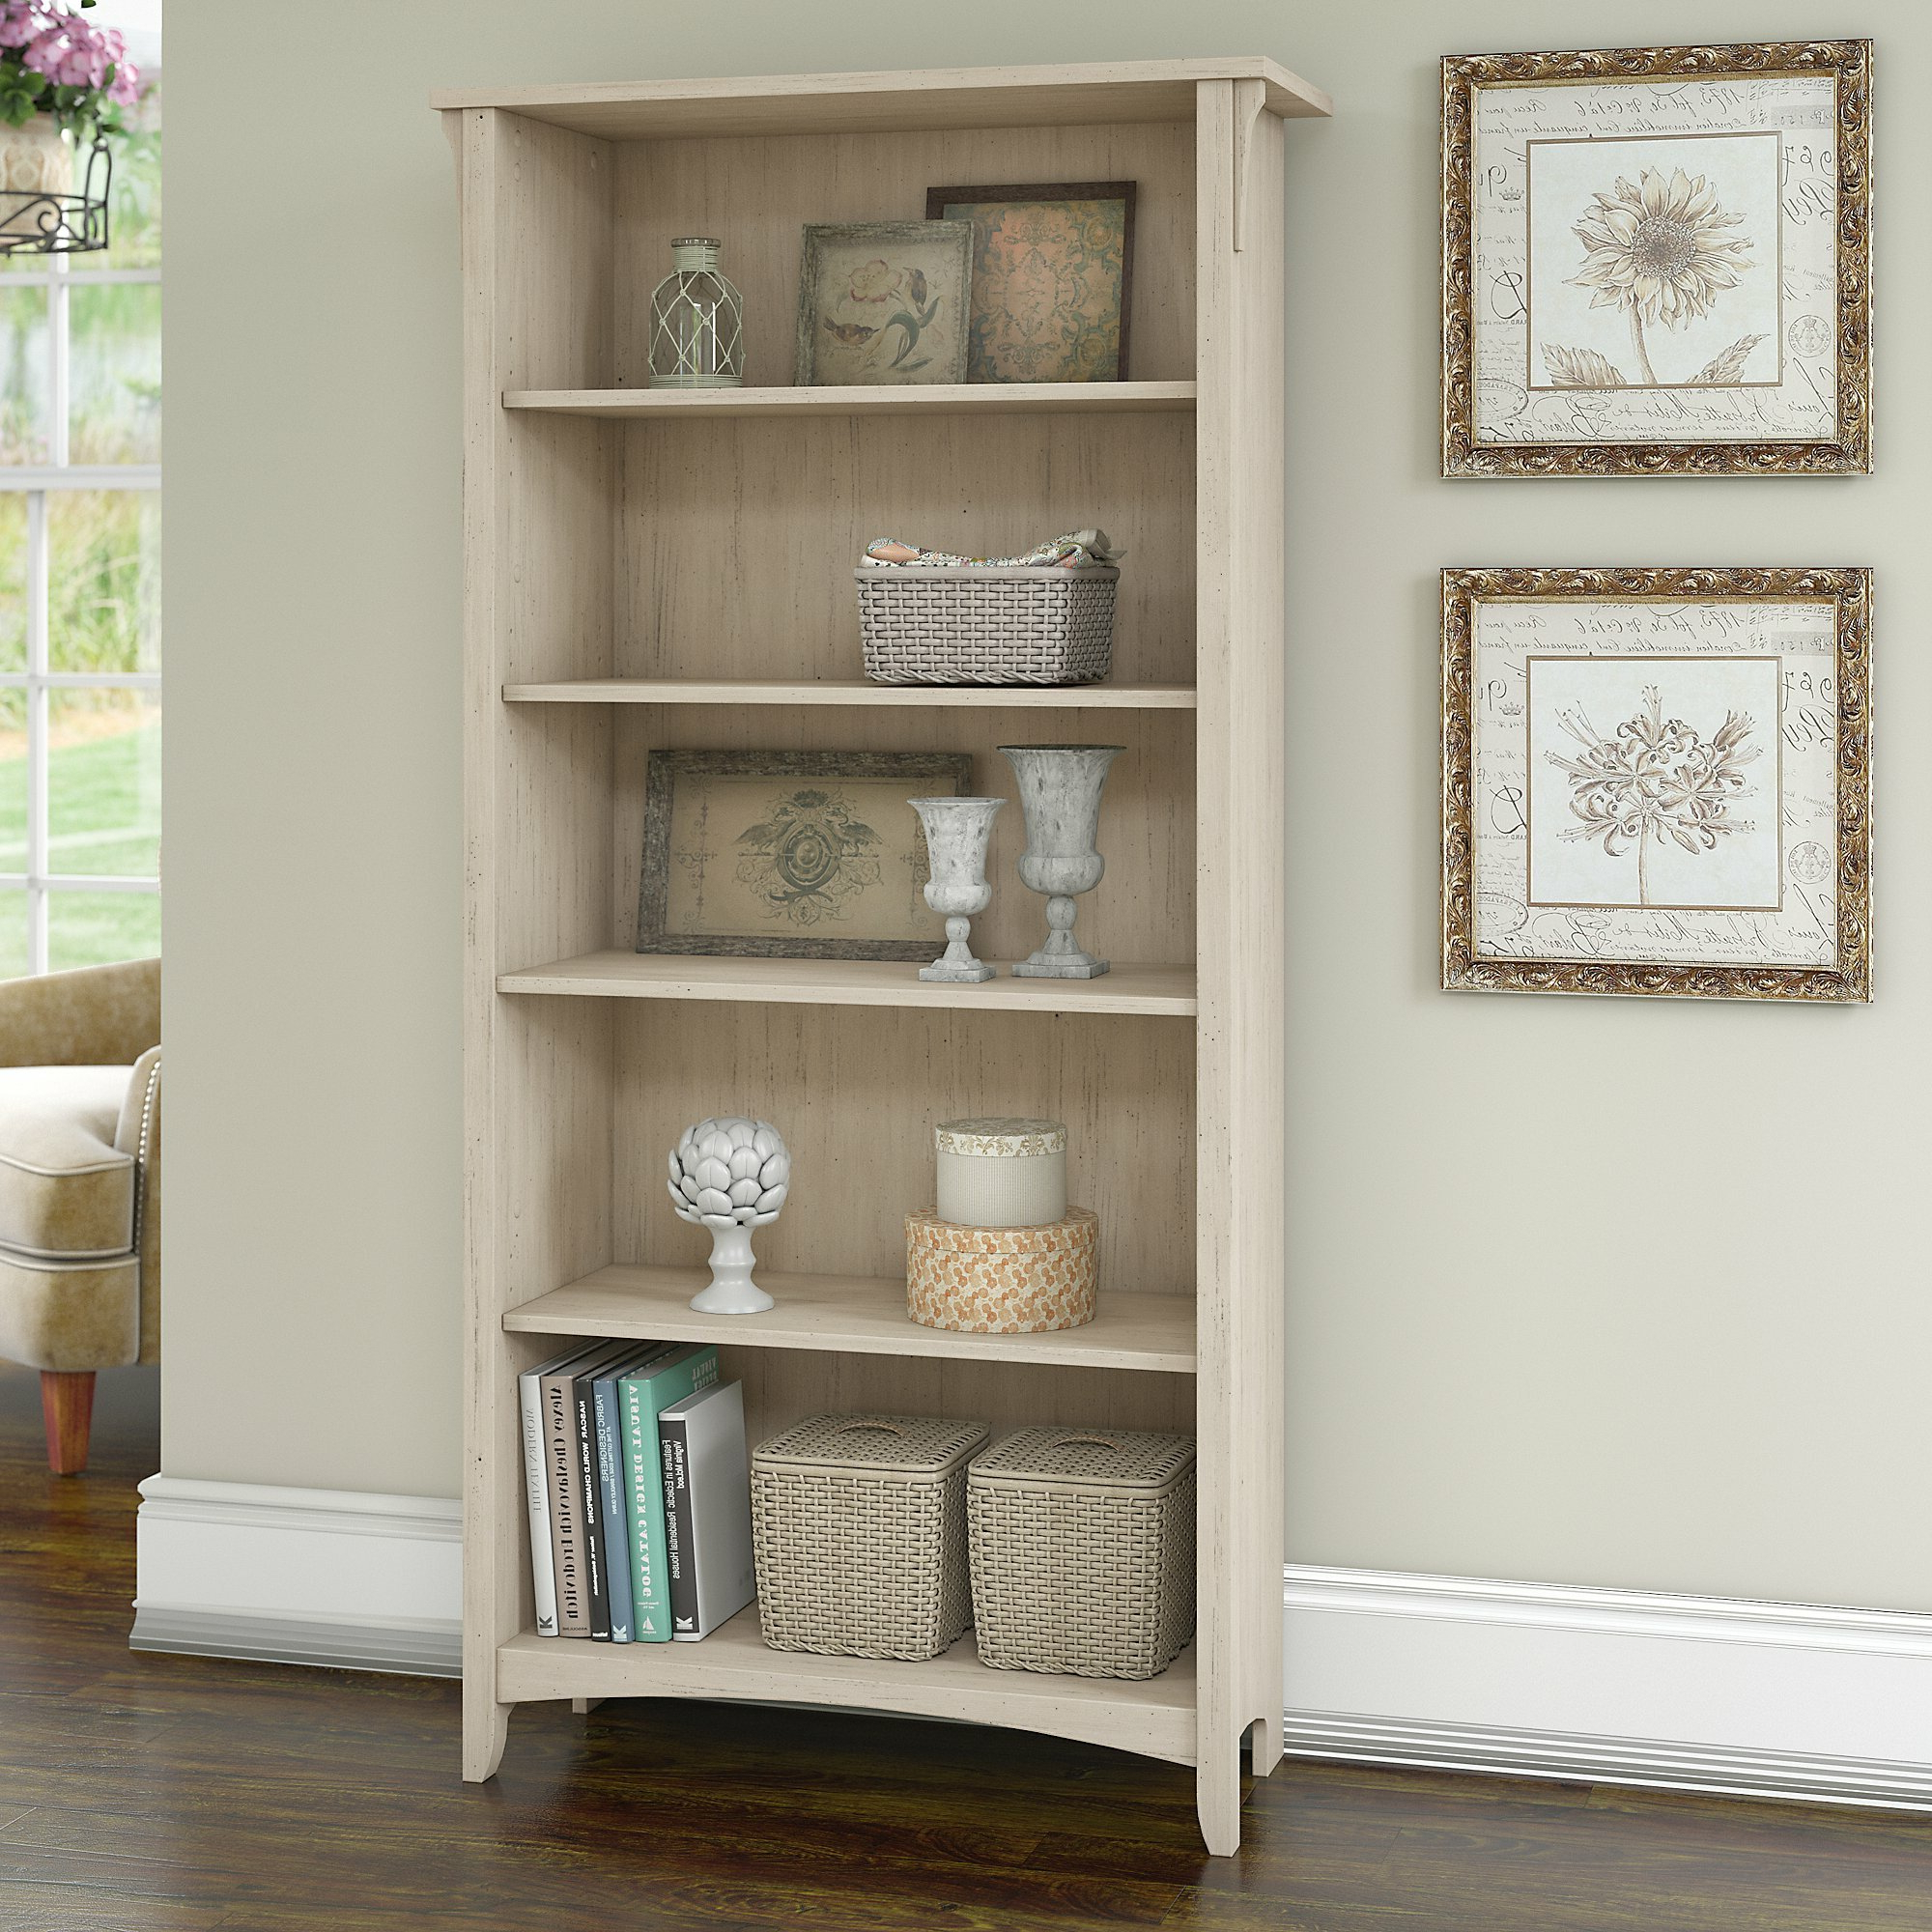 Widely Used Salina Cube Bookcases Within Salina Standard Bookcase (View 4 of 20)